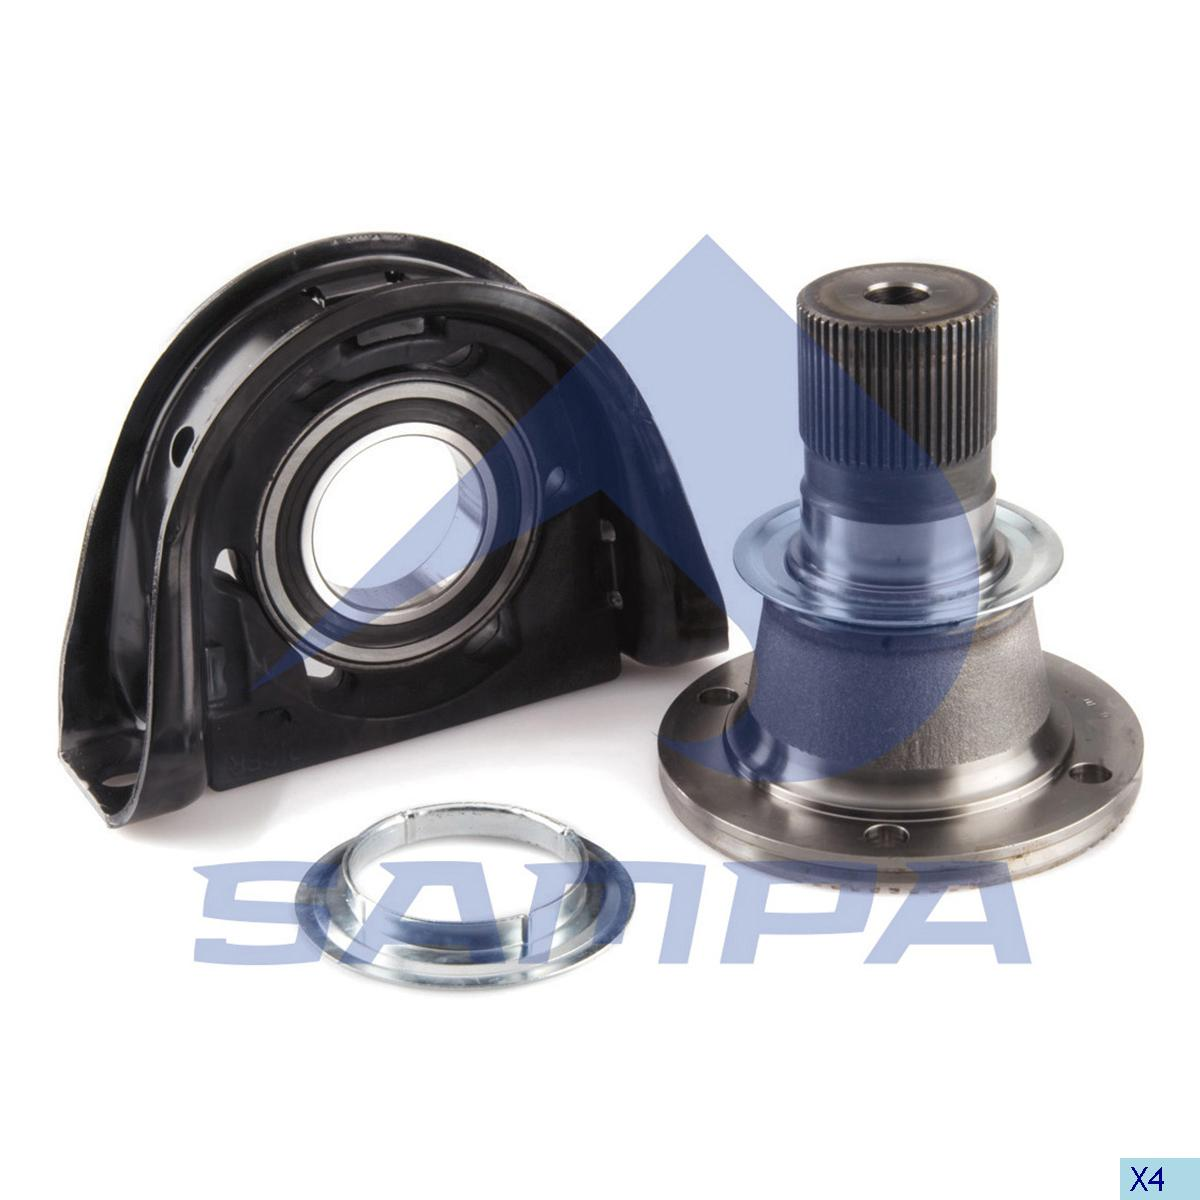 Shaft Bearing With Flange, Volvo, Propeller Shaft